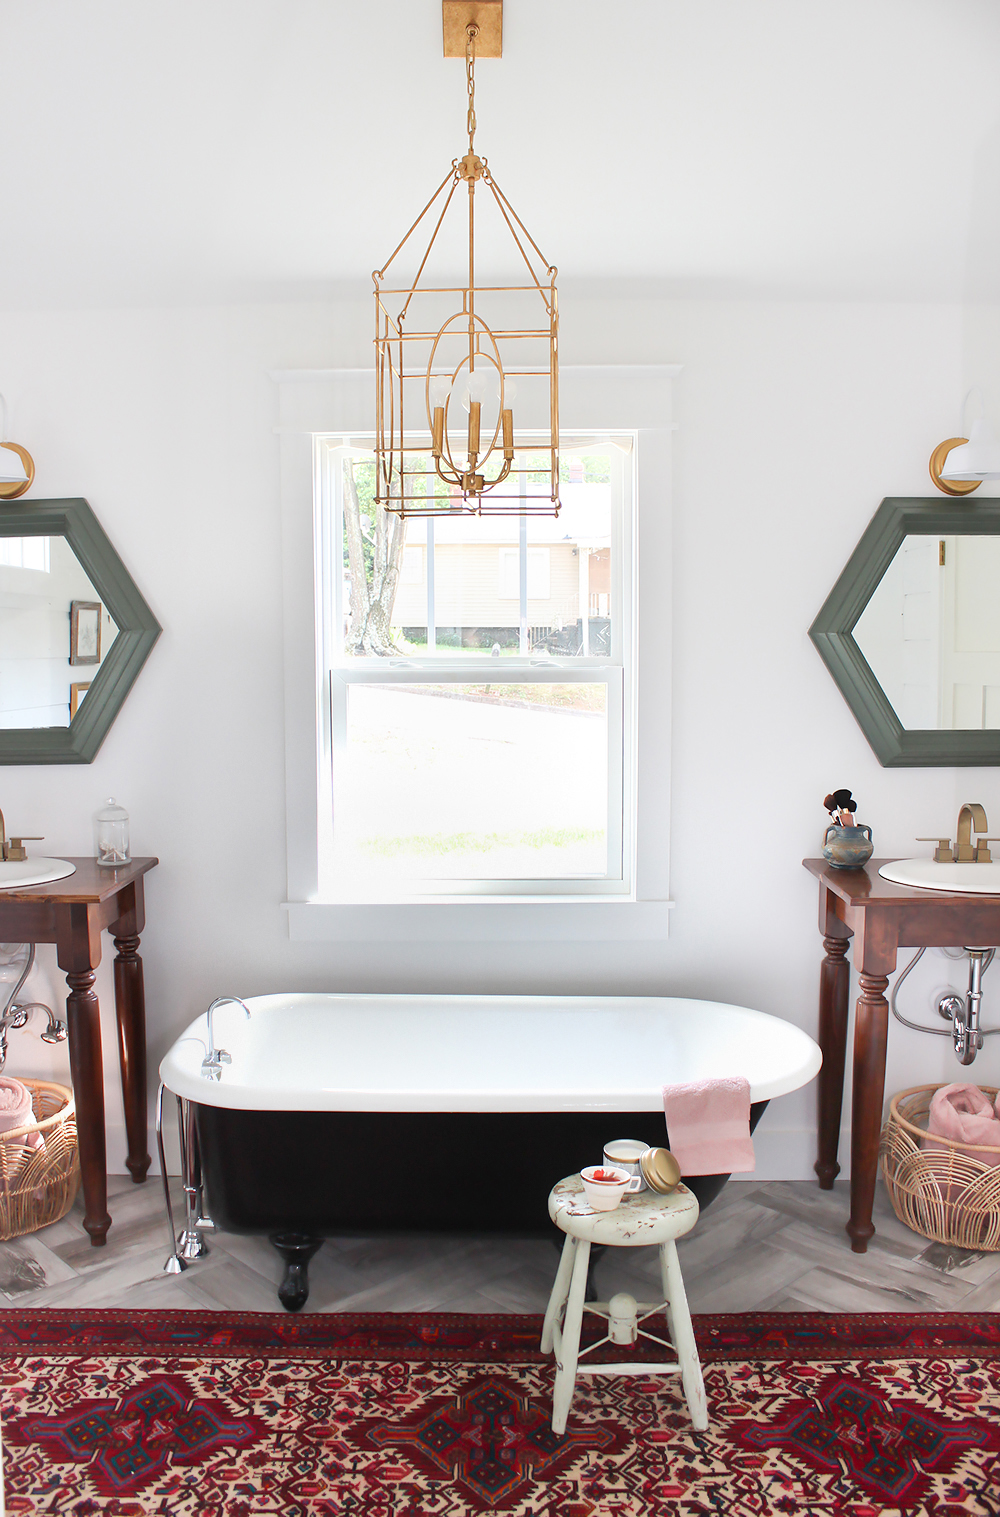 Rustic Master Bathroom Ideas: The Bathroom's Surprise Element: Pink Towels